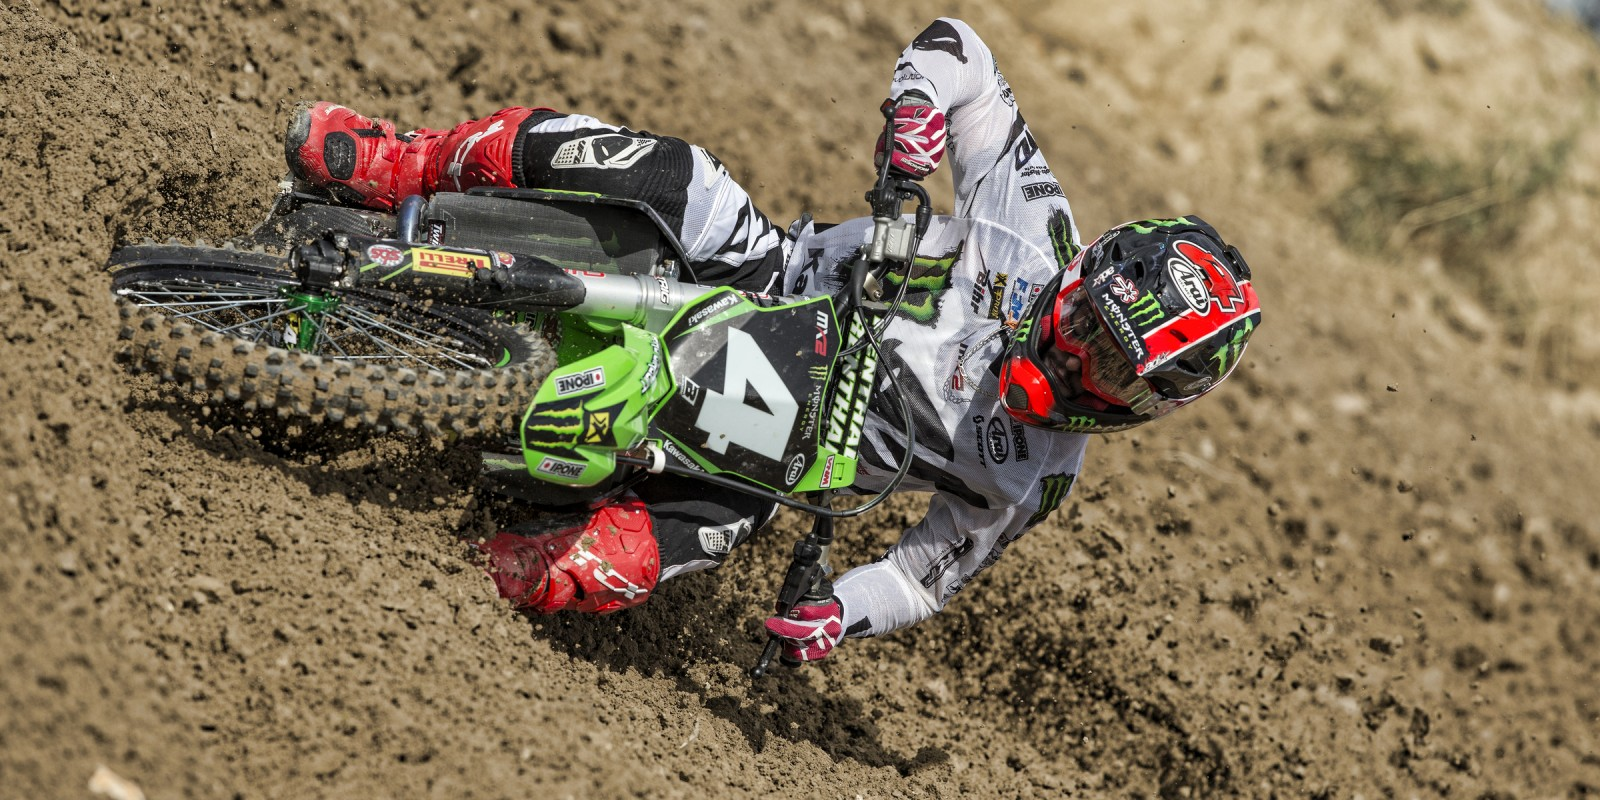 Dylan Ferrandis at the 2016 MXGP of Spain